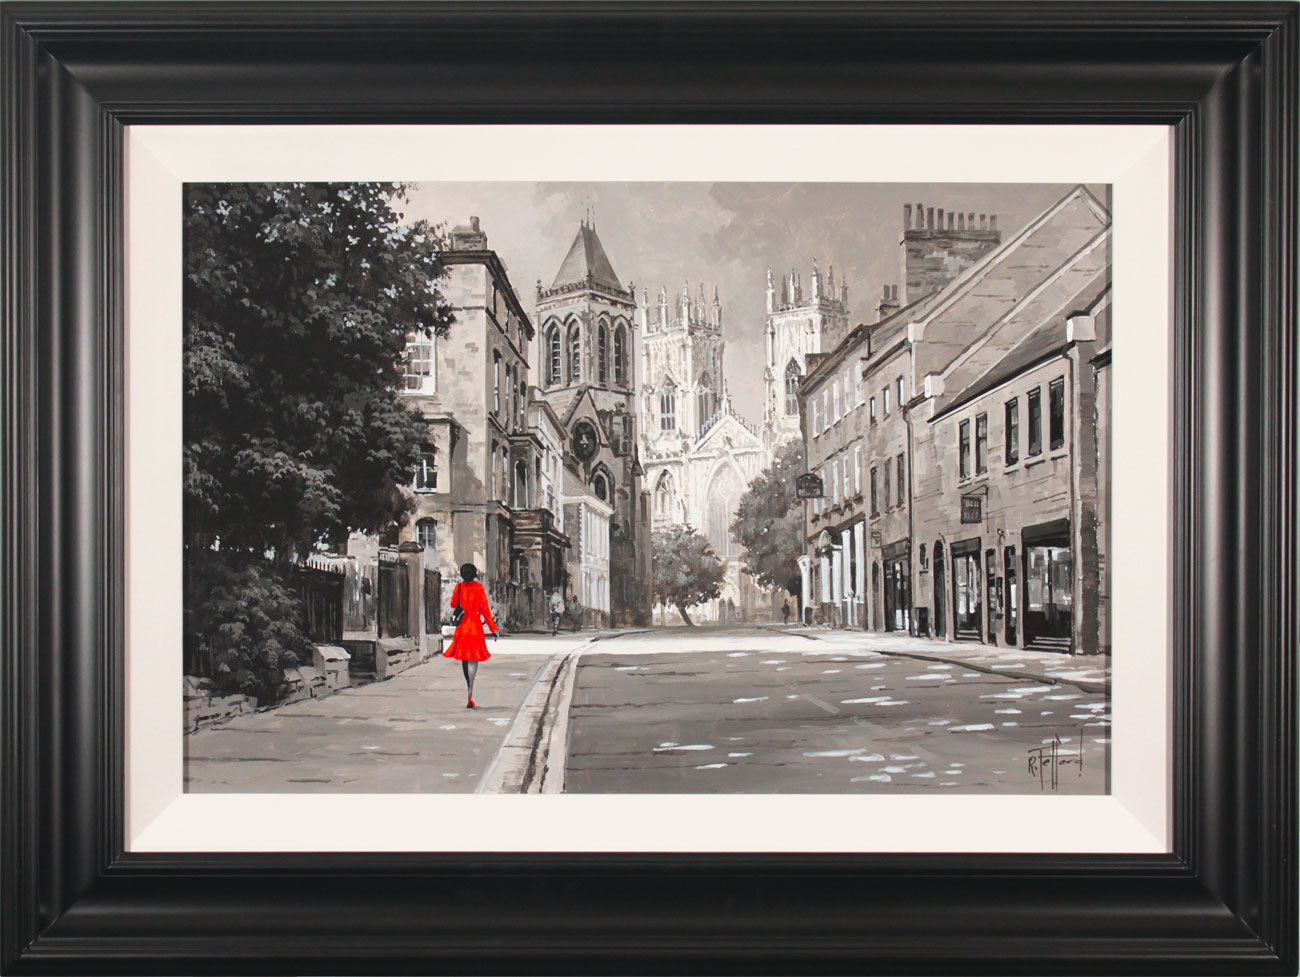 Richard Telford, Original oil painting on panel, Walk to York Minster, click to enlarge